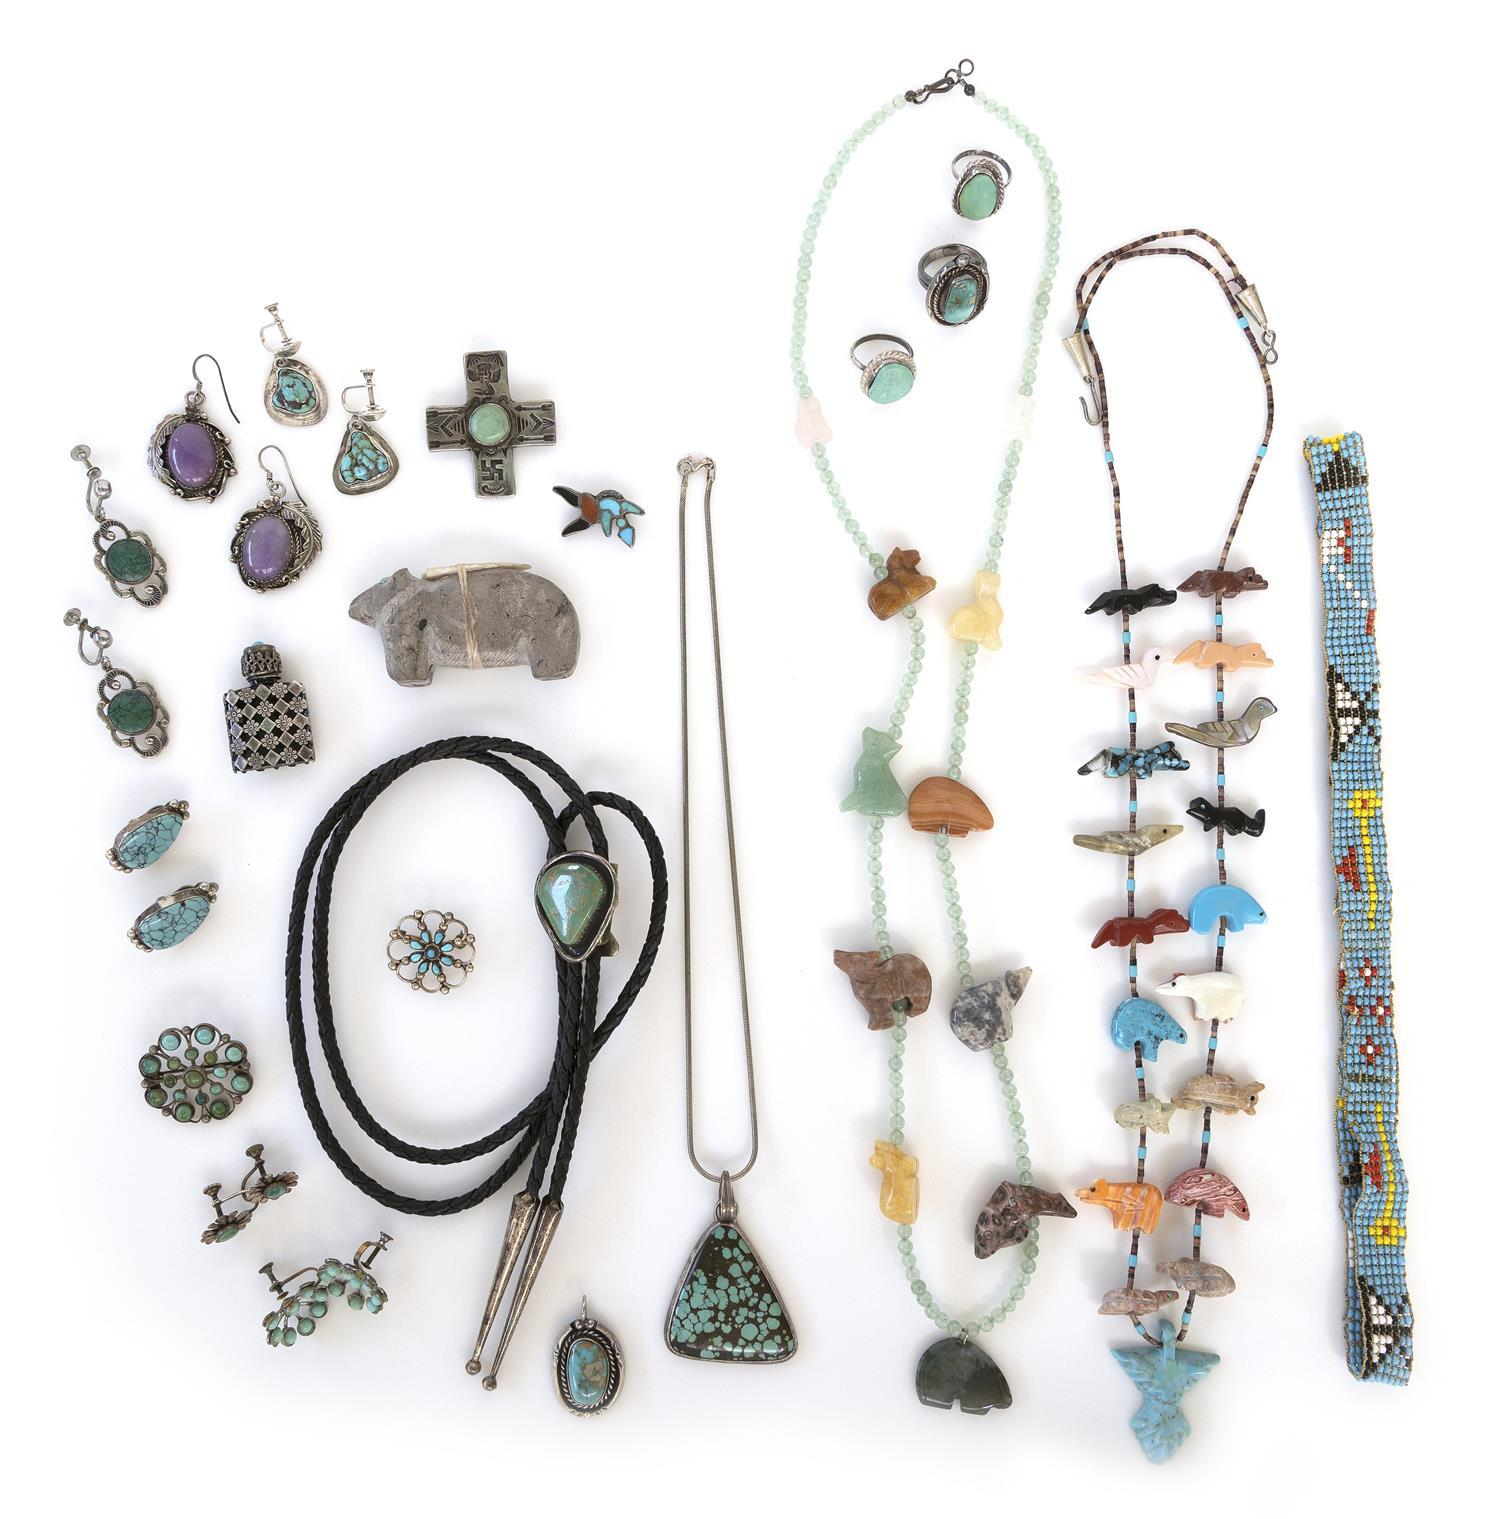 NINETEEN PIECES OF SOUTHWEST AND AMERICAN INDIAN JEWELRY Together with a French silver, glass and turquoise perfume bottle and a Zun...